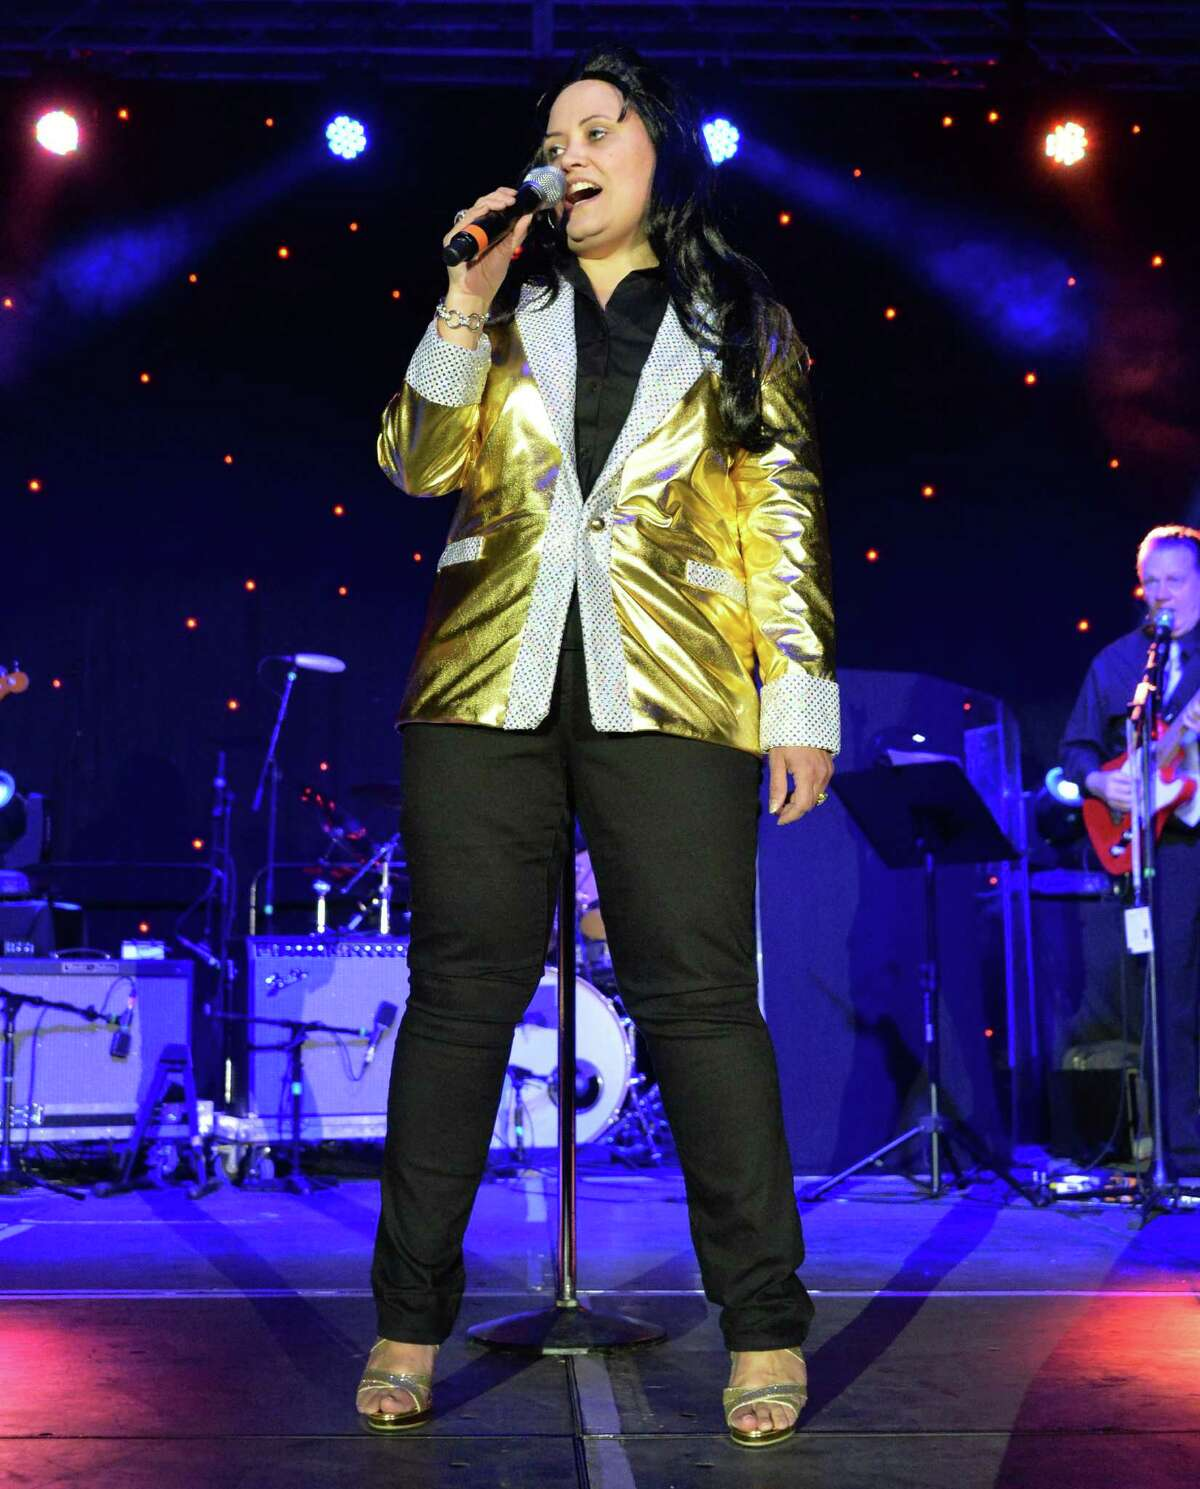 Kathy Dugan of Bloomsburg, Penn., performs in the first round of Elvis tribute artist competition at the Lake George Forum Friday May 30, 2014, in Lake George, NY. (John Carl D'Annibale / Times Union)